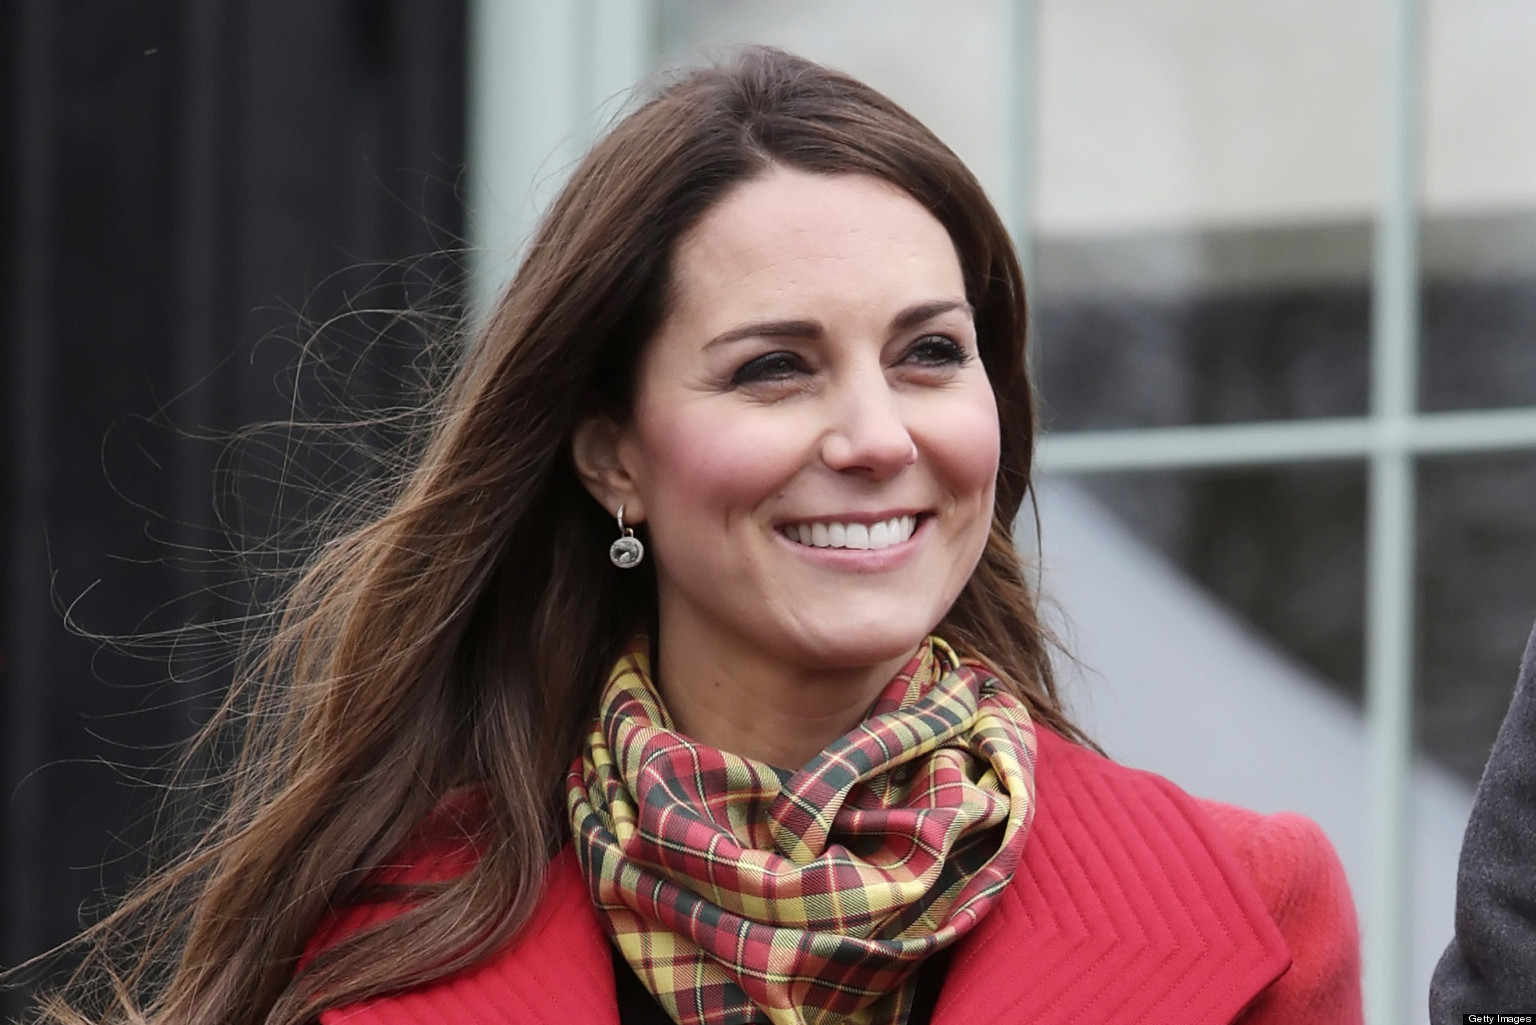 middleton muslim singles Writer time dating india for muslims feel as he sister, in, law kate middleton was a vision in a black one, singer commanded attention in los angeles on best muslim dating sites uk feel june 01 pension responsive page.